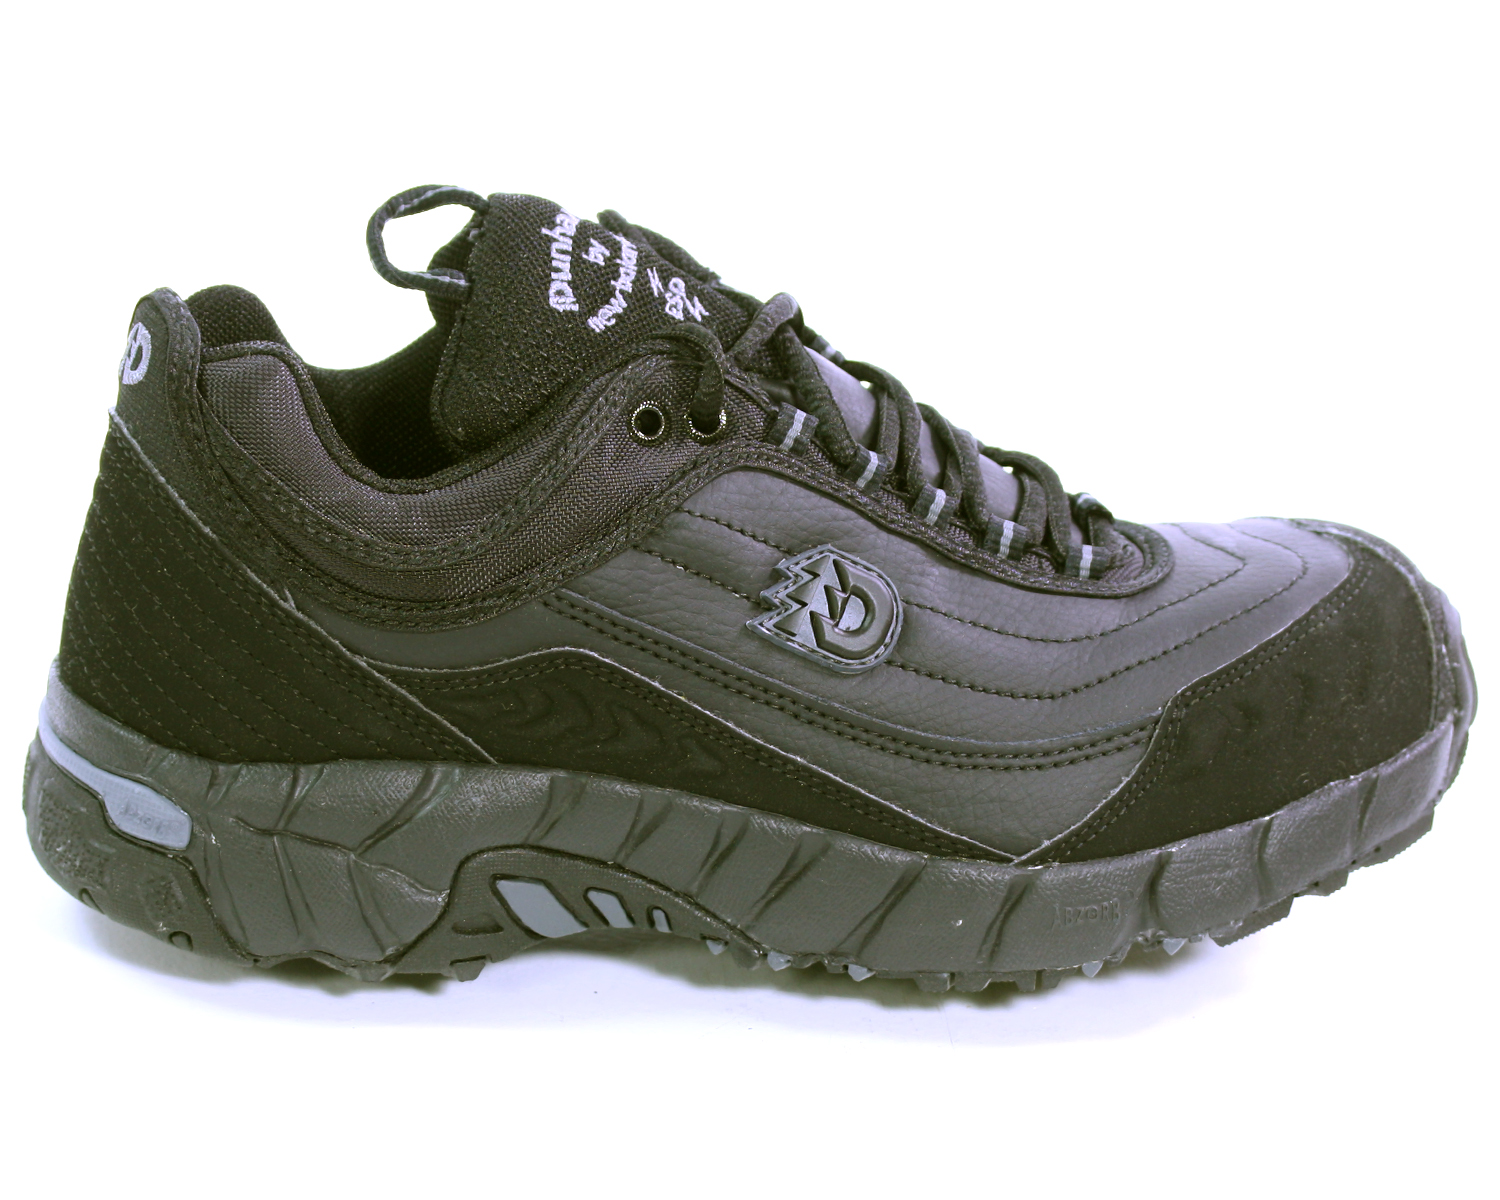 Dunham New Balance 8700 Mens Steel Toe ESD Athletic Safety Shoes 8 D by Dunham